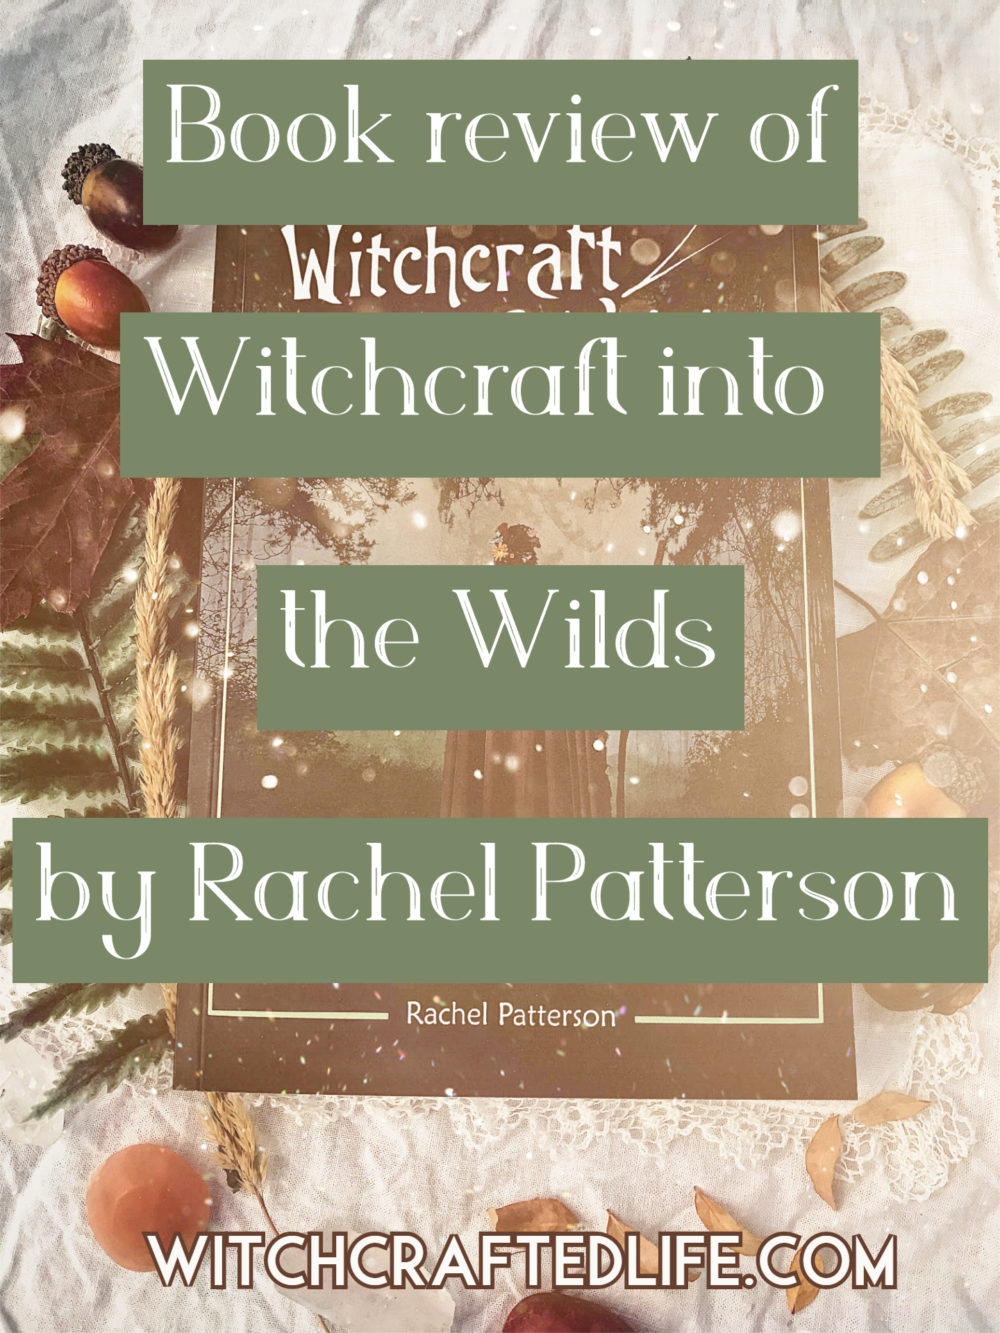 Book review of Witchcraft into the Wilds by Rachel Patterson